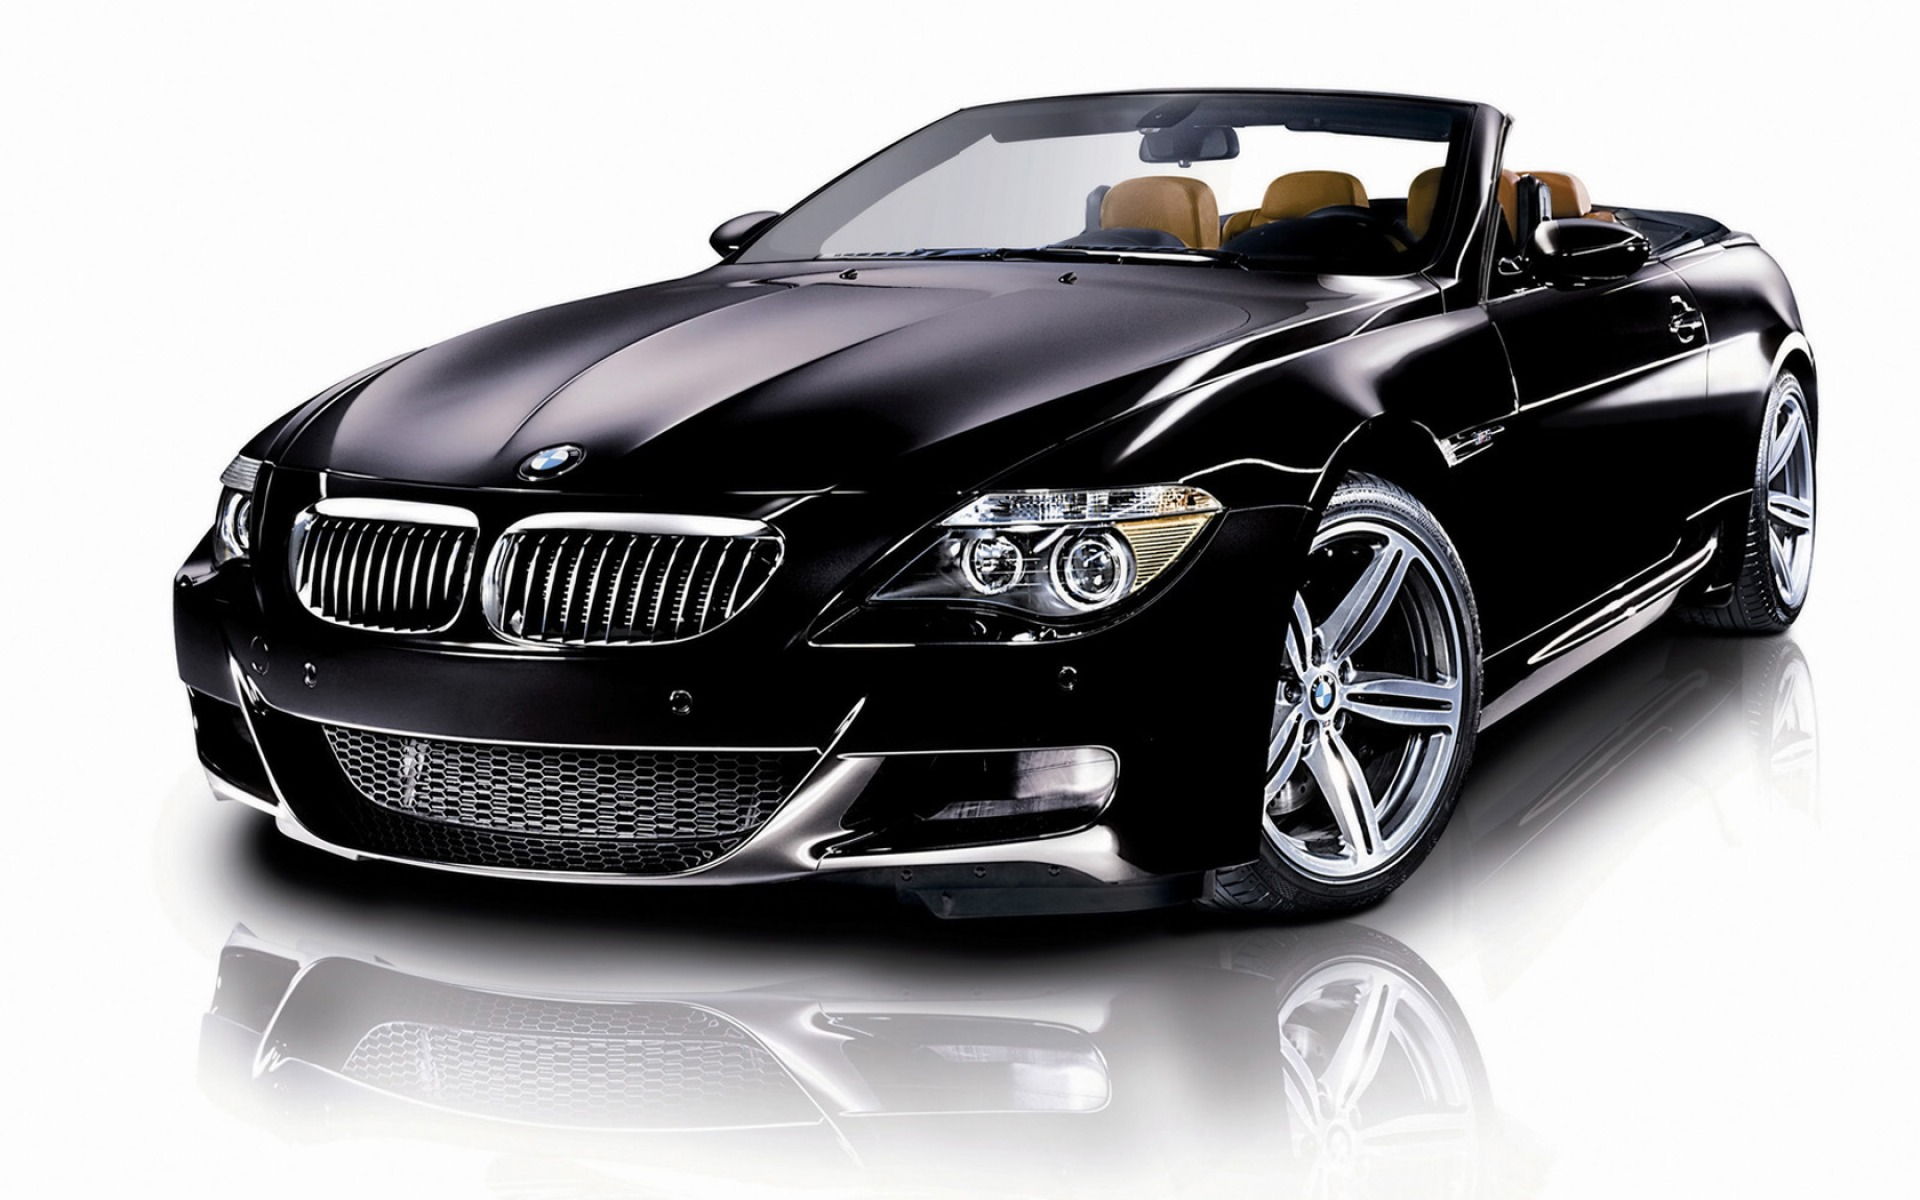 bmw m6 convertible wallpaper bmw cars wallpapers in jpg. Black Bedroom Furniture Sets. Home Design Ideas